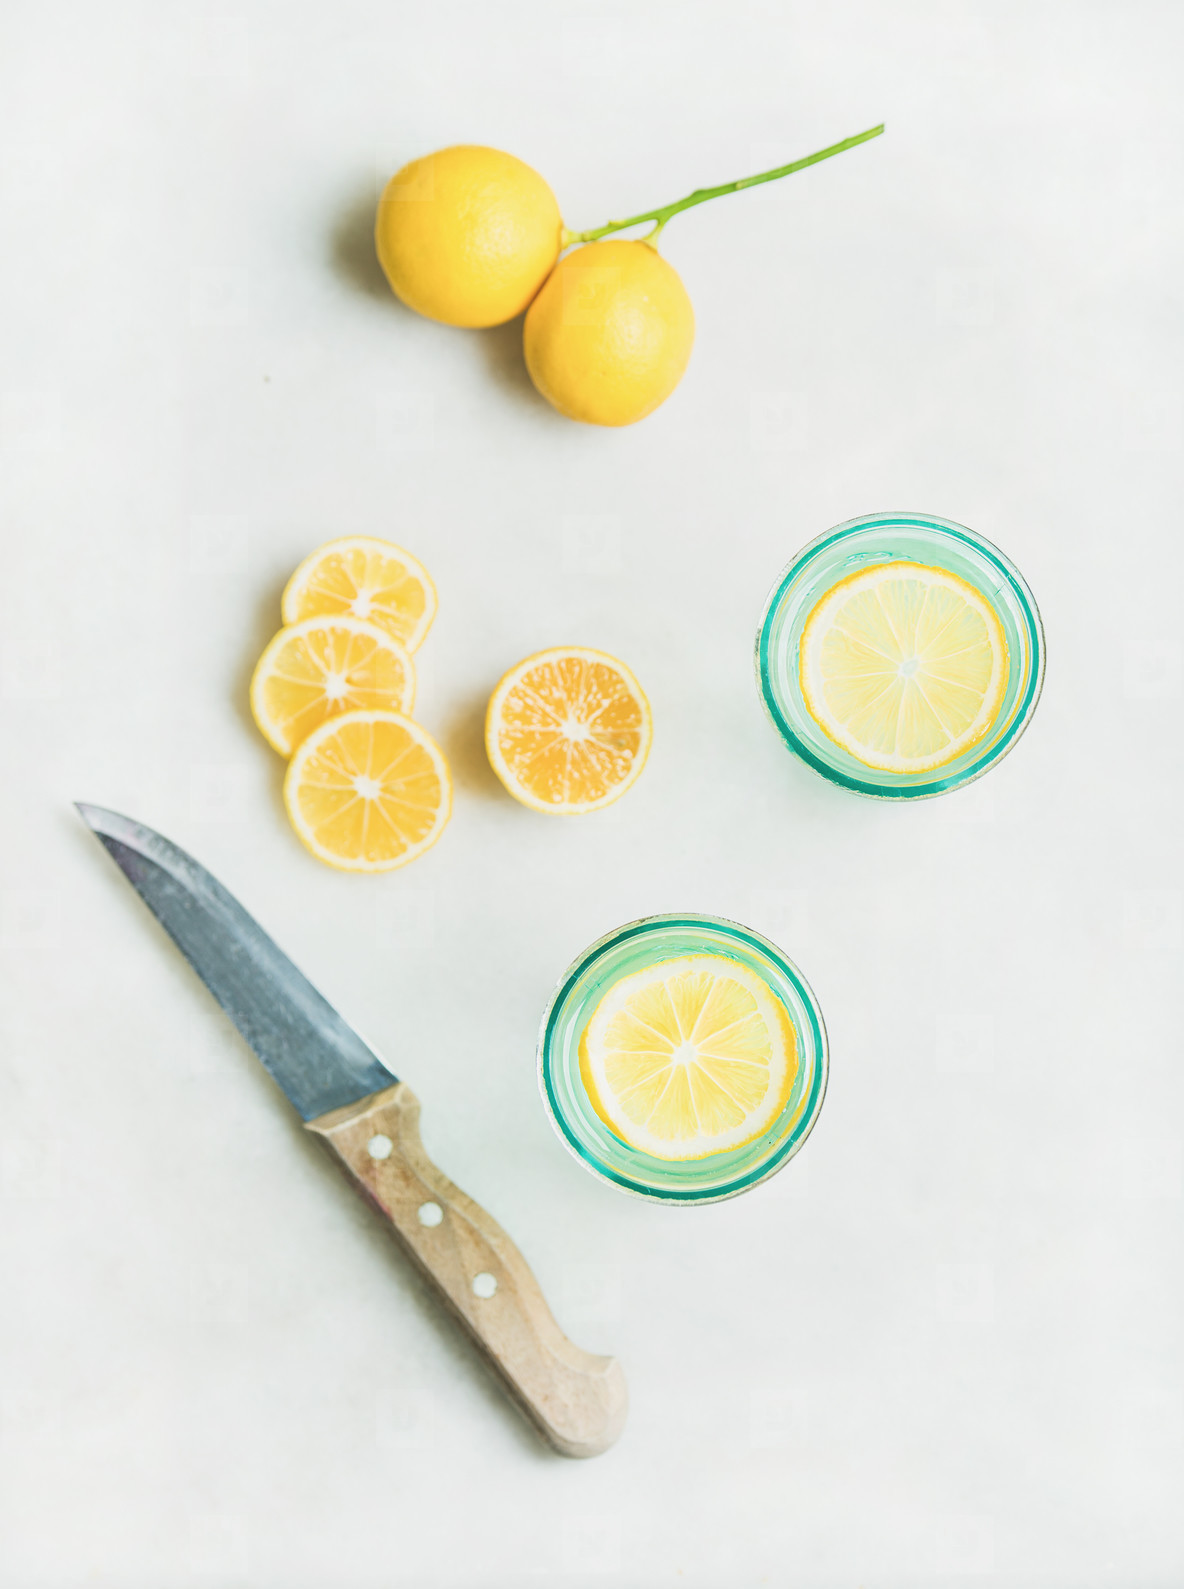 Morning detox lemon water in glasses  marble background  top view